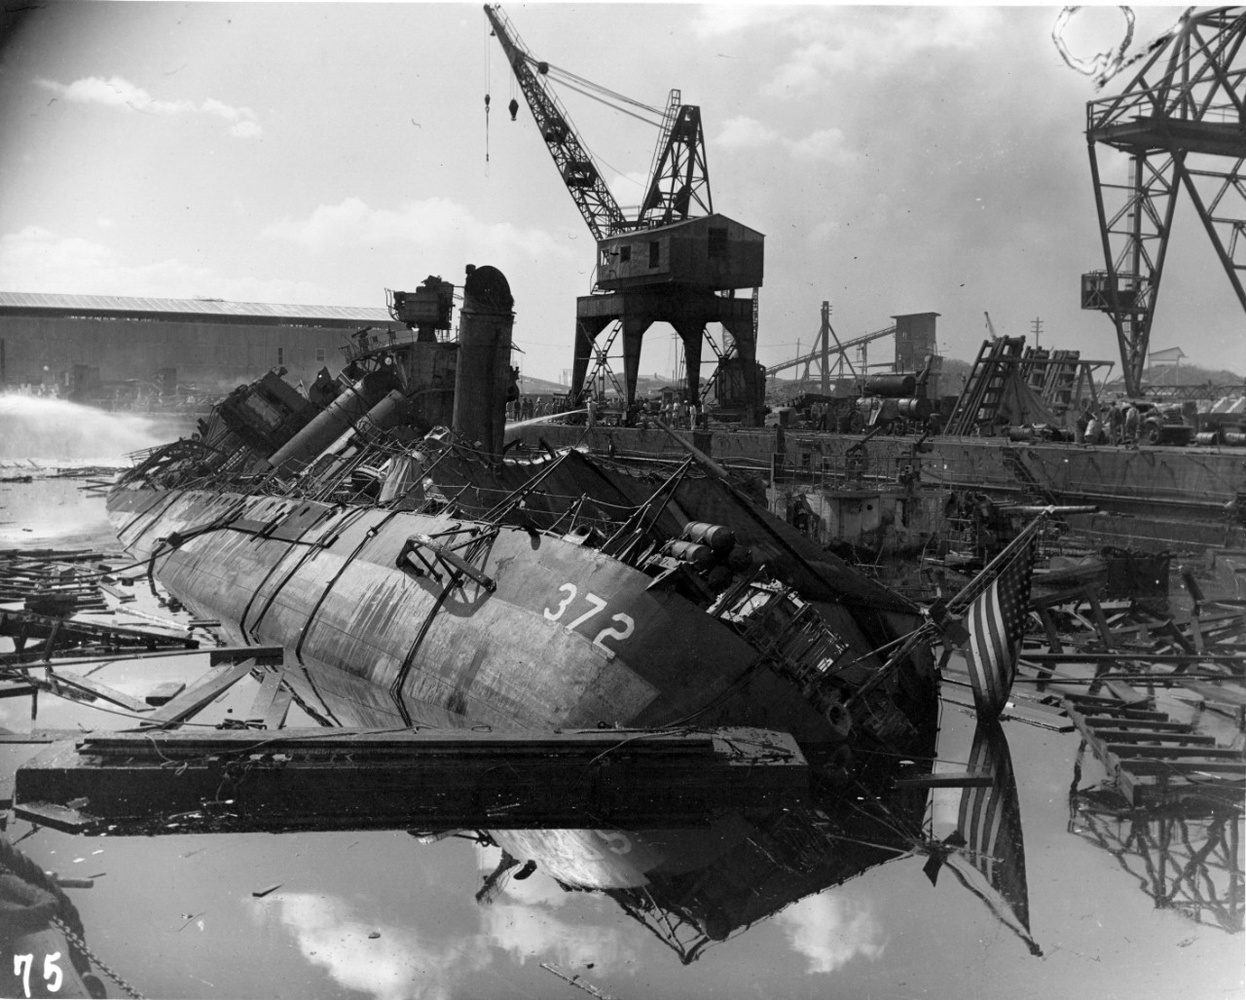 USS Cassin burned out and capsized against USS Downes after the attack. It's hard to imagine the time and effort required to clean up the wreckage from these massive ships.